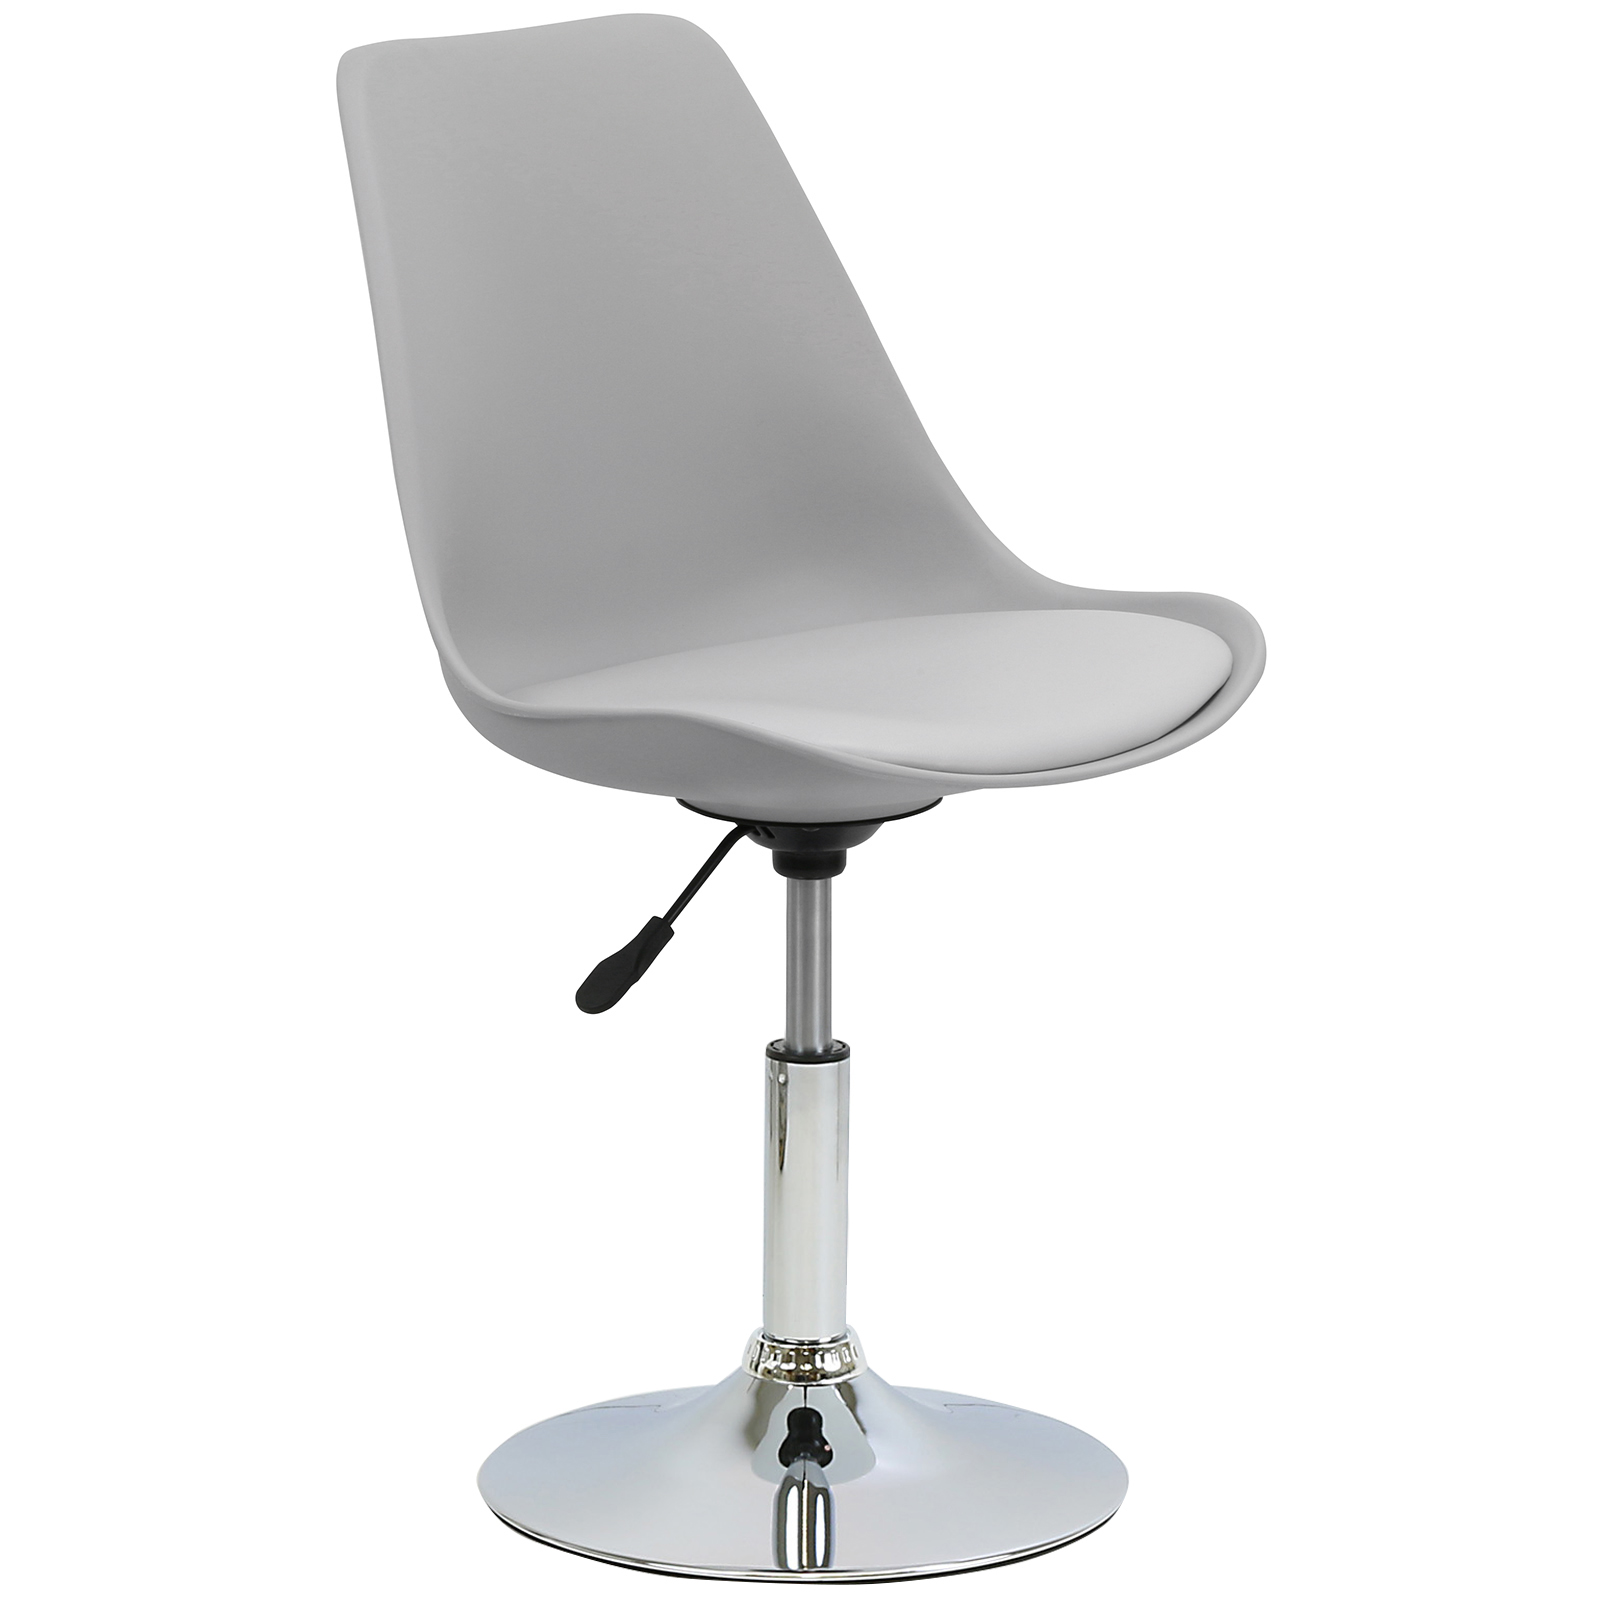 swivel office chair base pedicure chairs used hartleys grey seat tulip desk reception dining